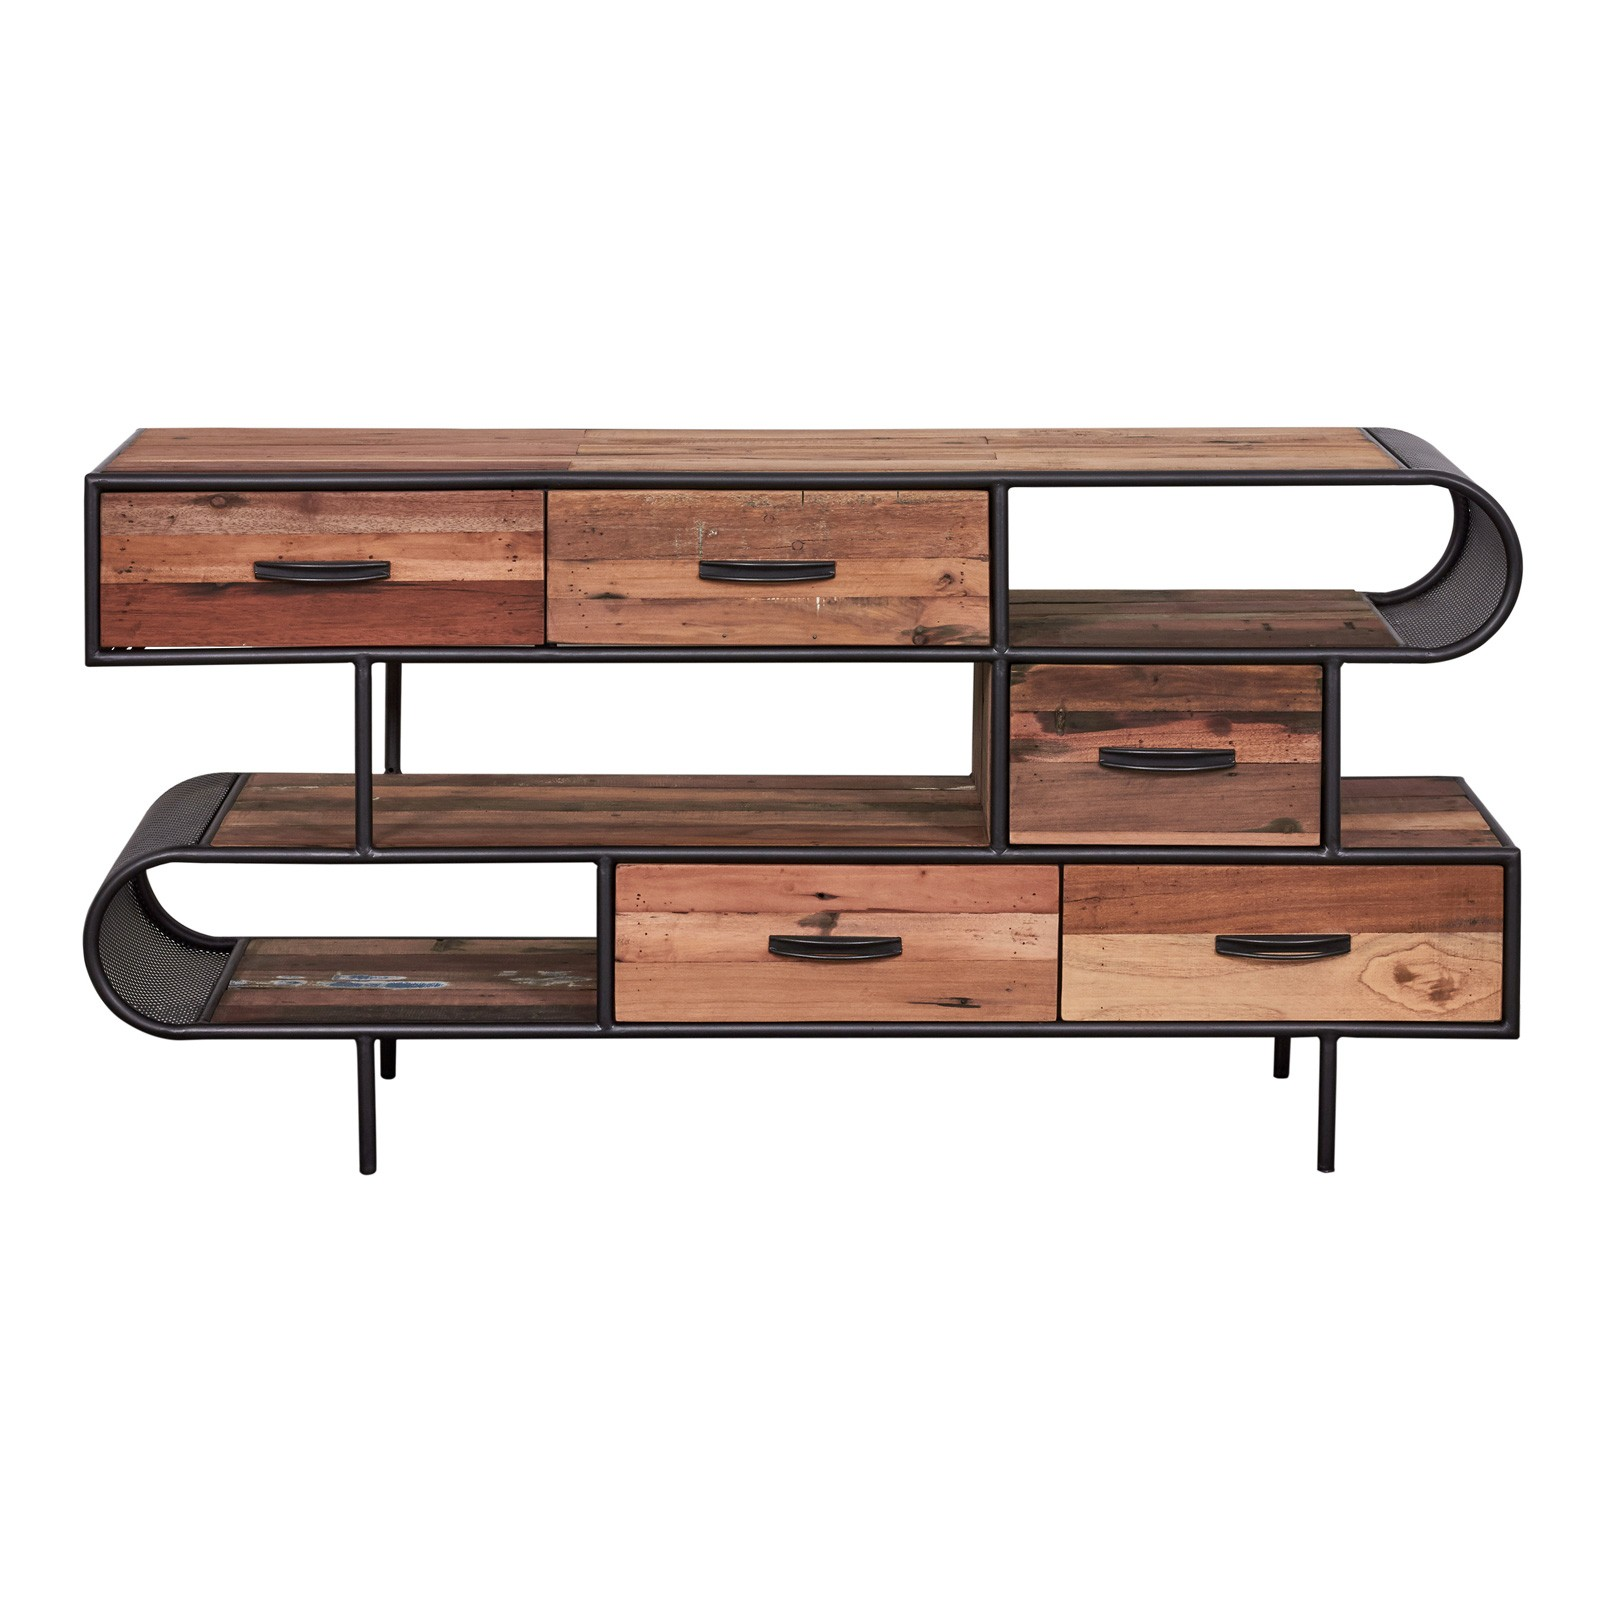 Aru Commercial Grade Industrial Recycled Timber & Iron Multi Drawer Sideboard, 160cm